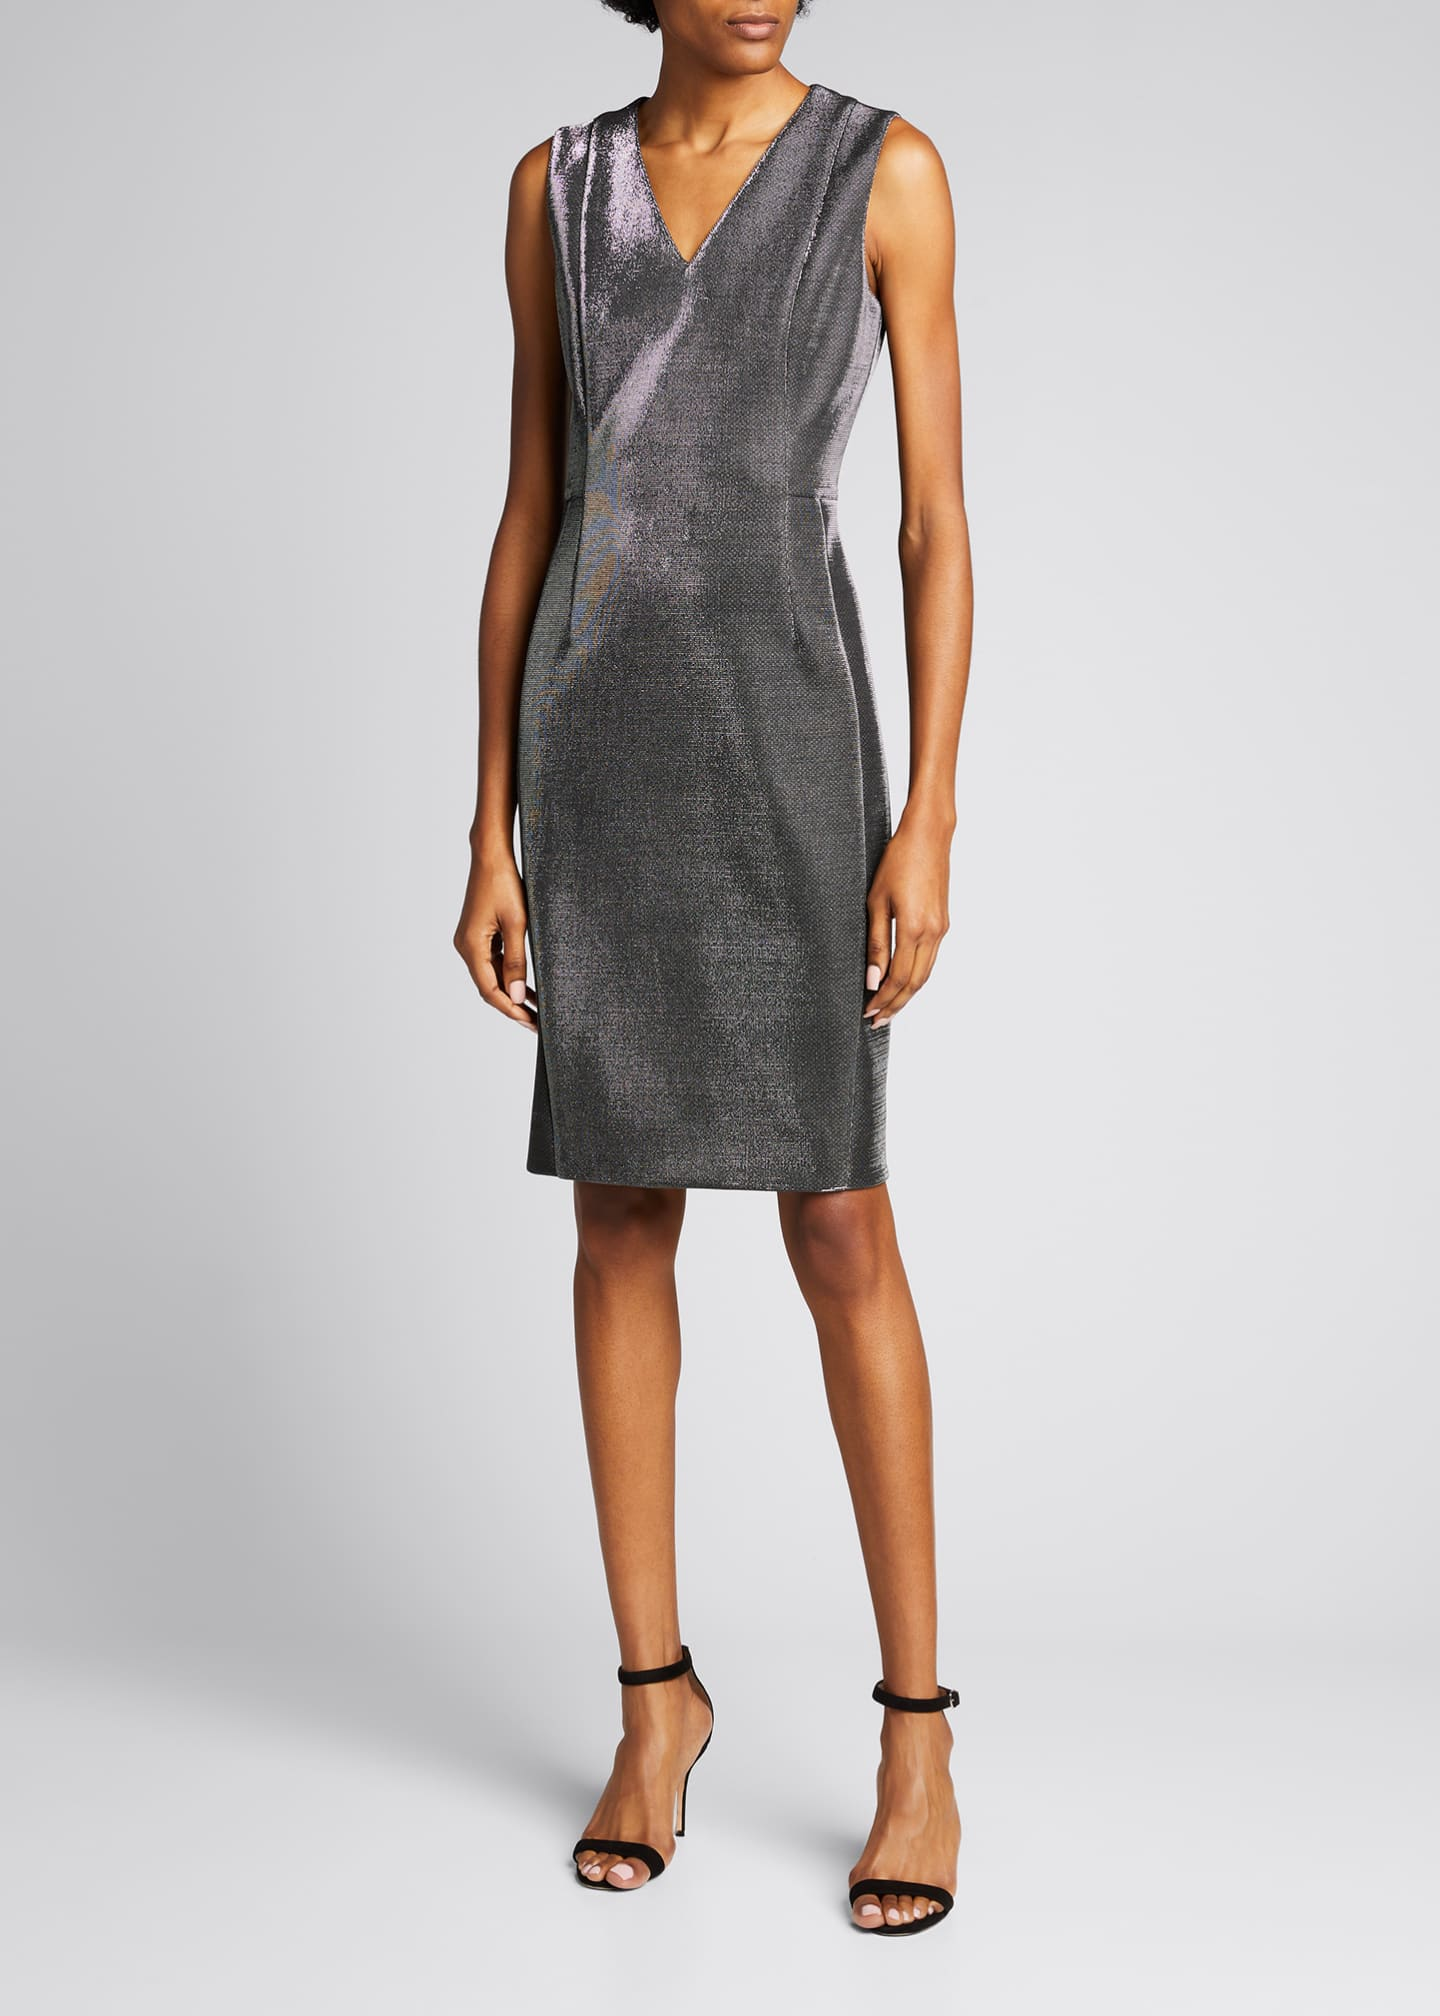 Image 1 of 5: Sleeveless V-Neck Metallic Cocktail Dress